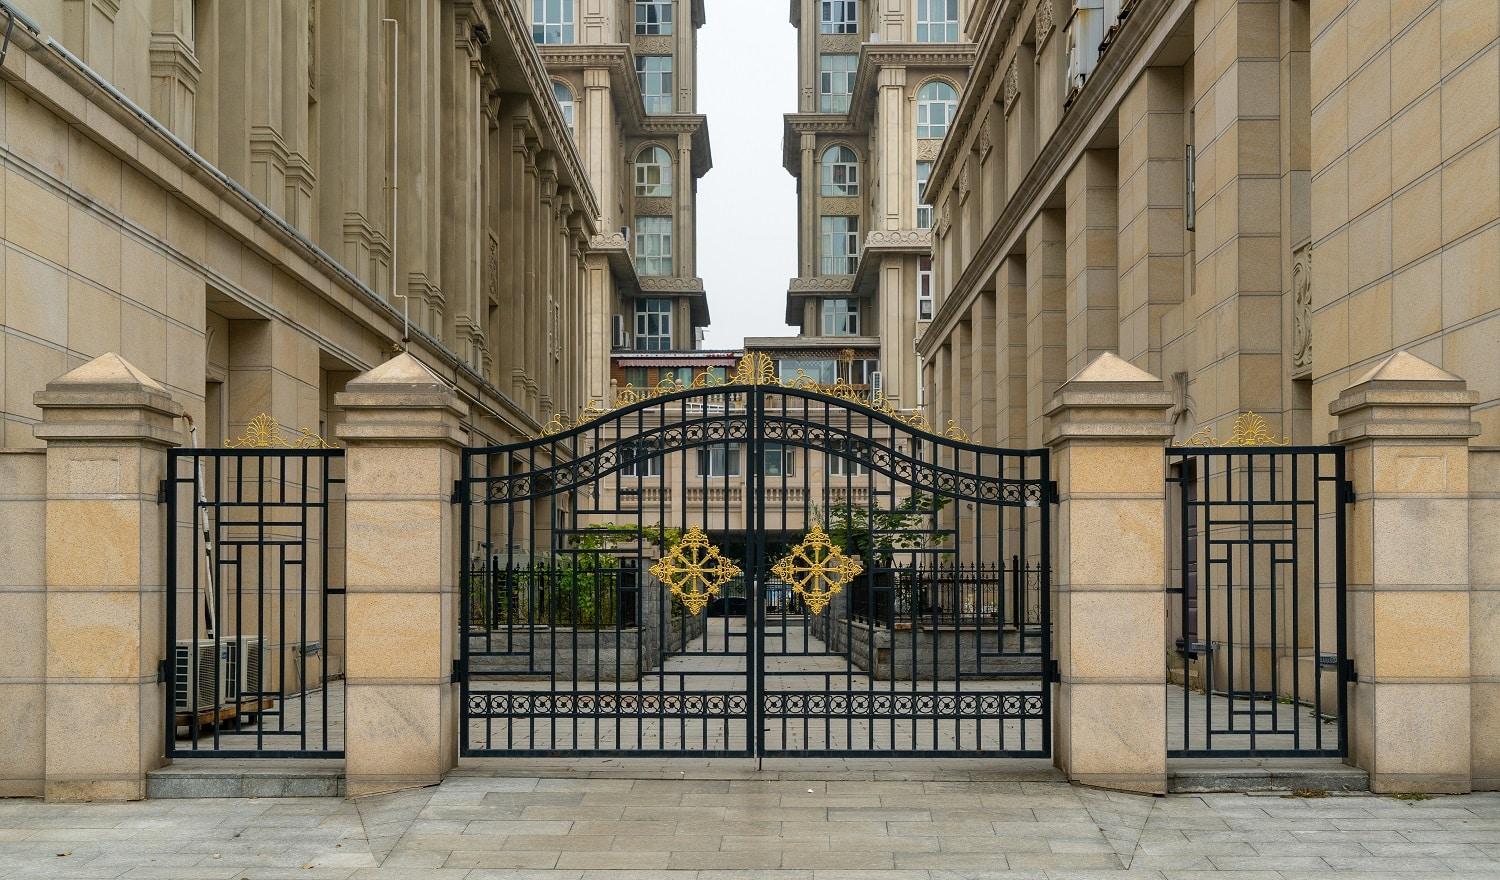 Iron gate at the entrance of residential building in residential area